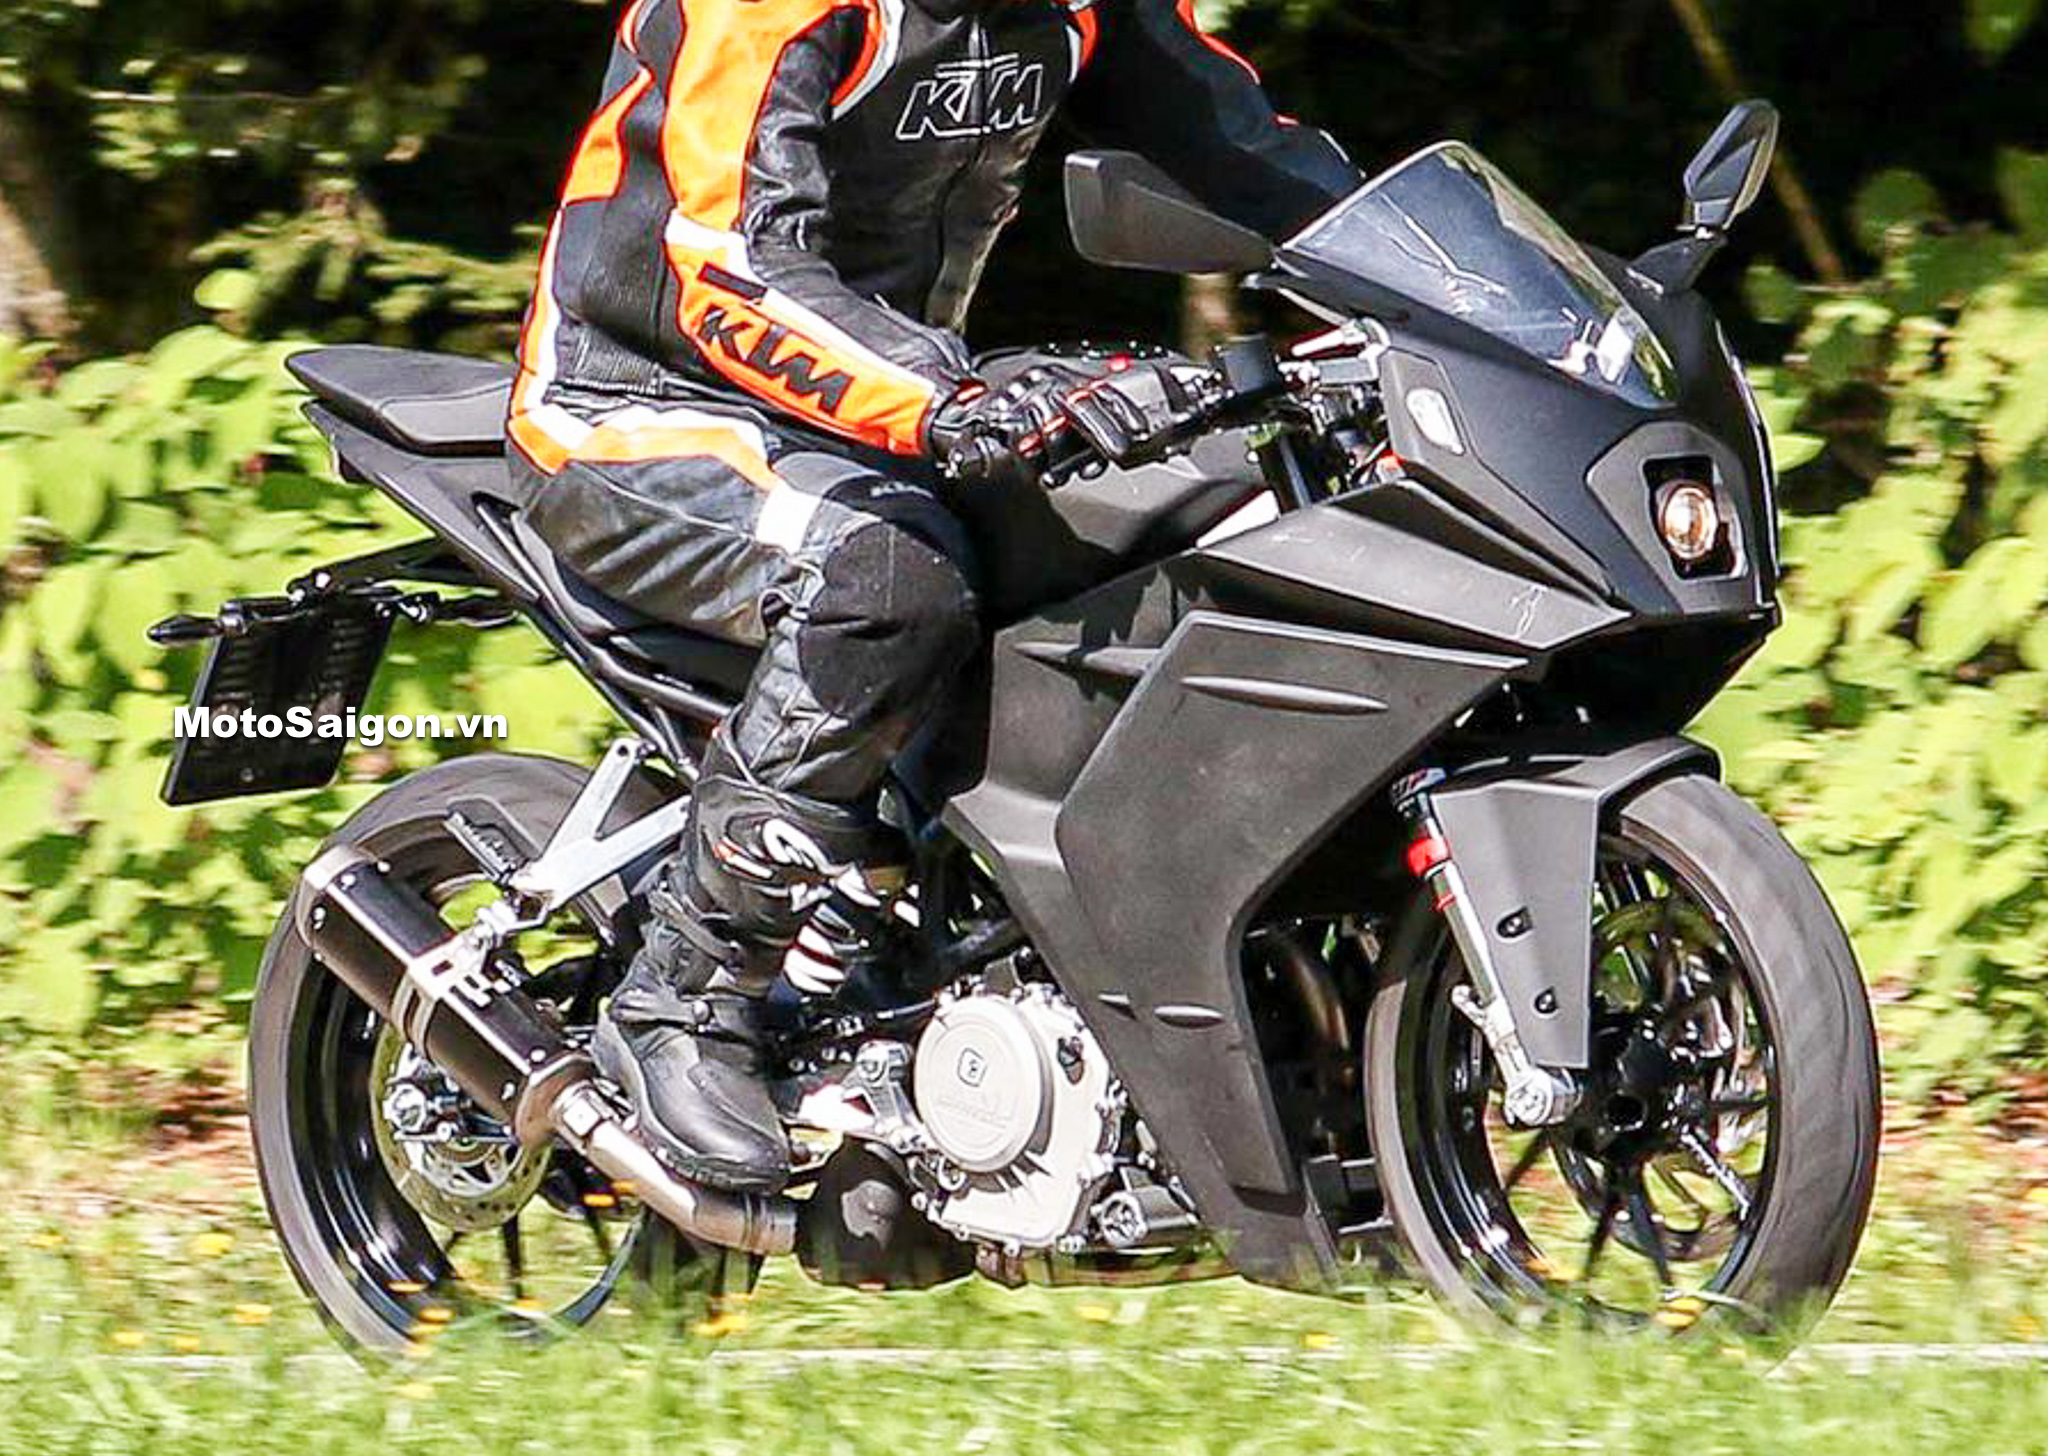 Ktm Rc 390 2020 Is Expected To Be Priced In April Electrodealpro